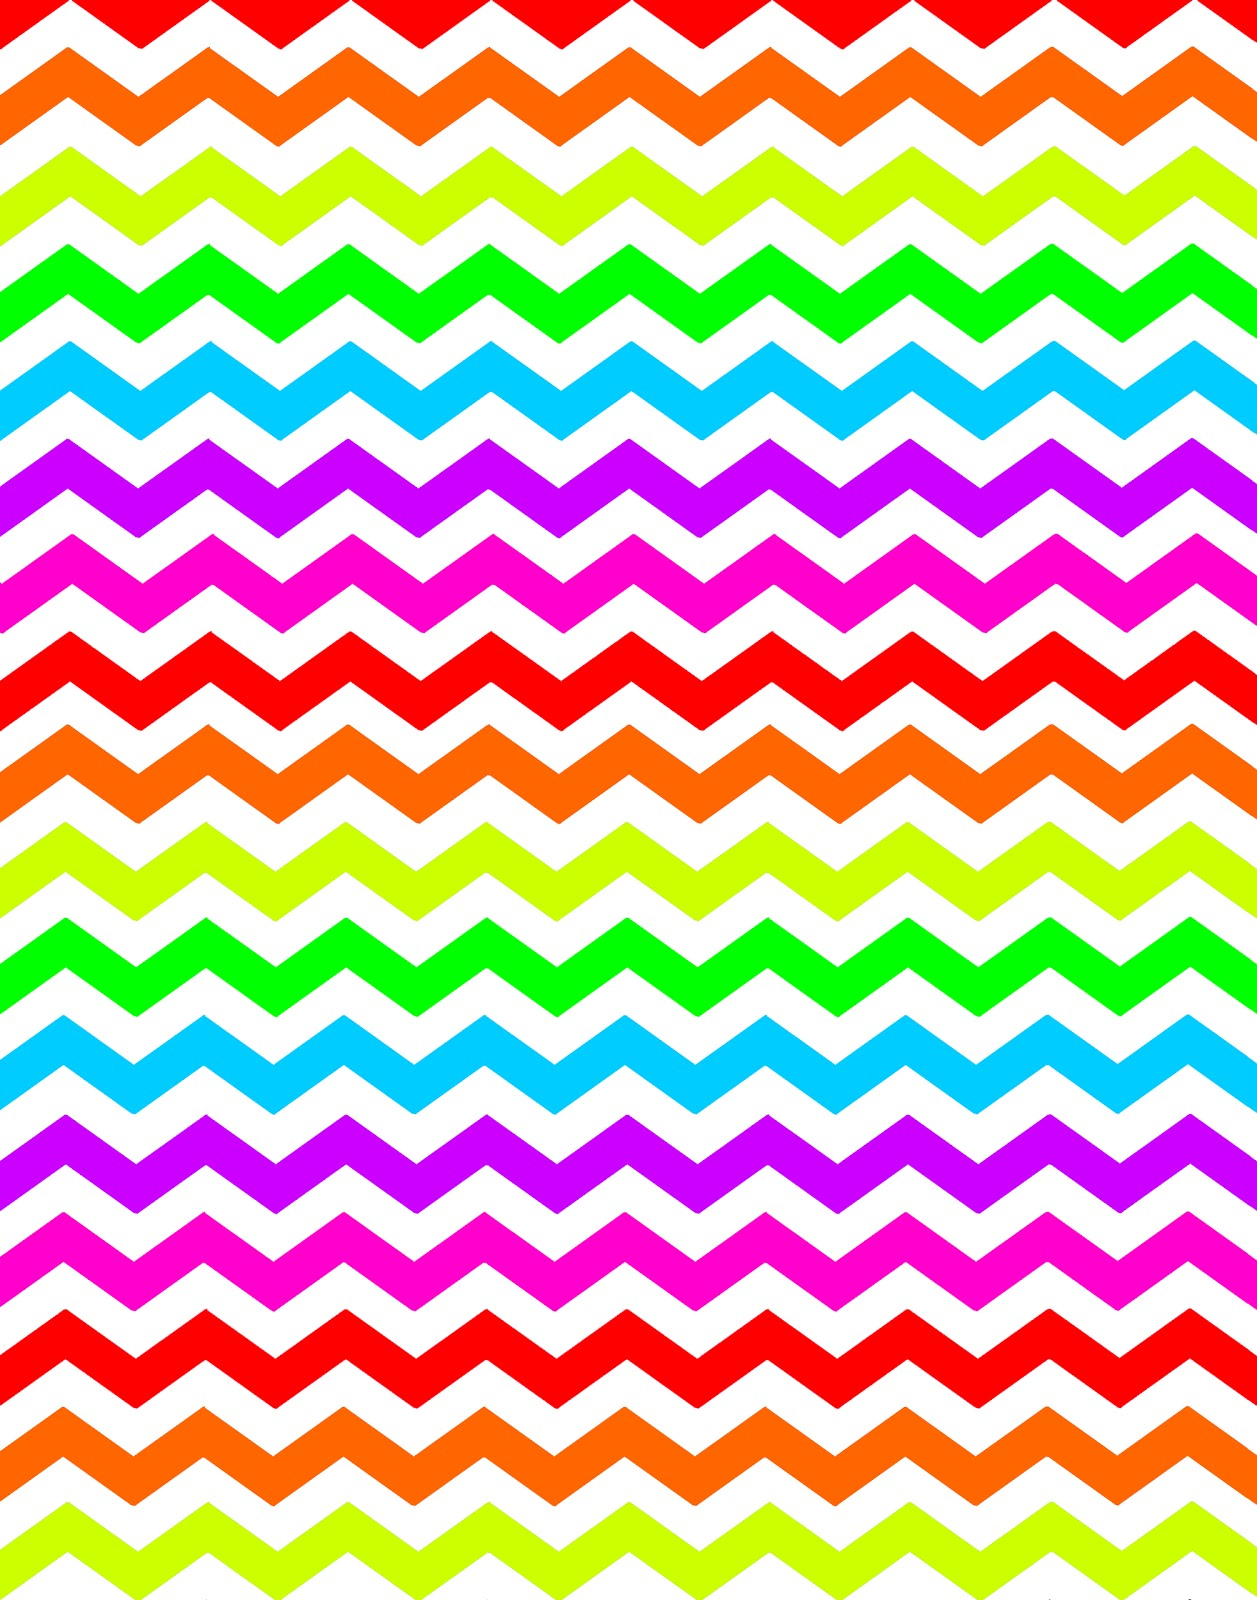 Doodlecraft: 16 New Colors Chevron Background Patterns! - Free Printable Wallpaper Patterns